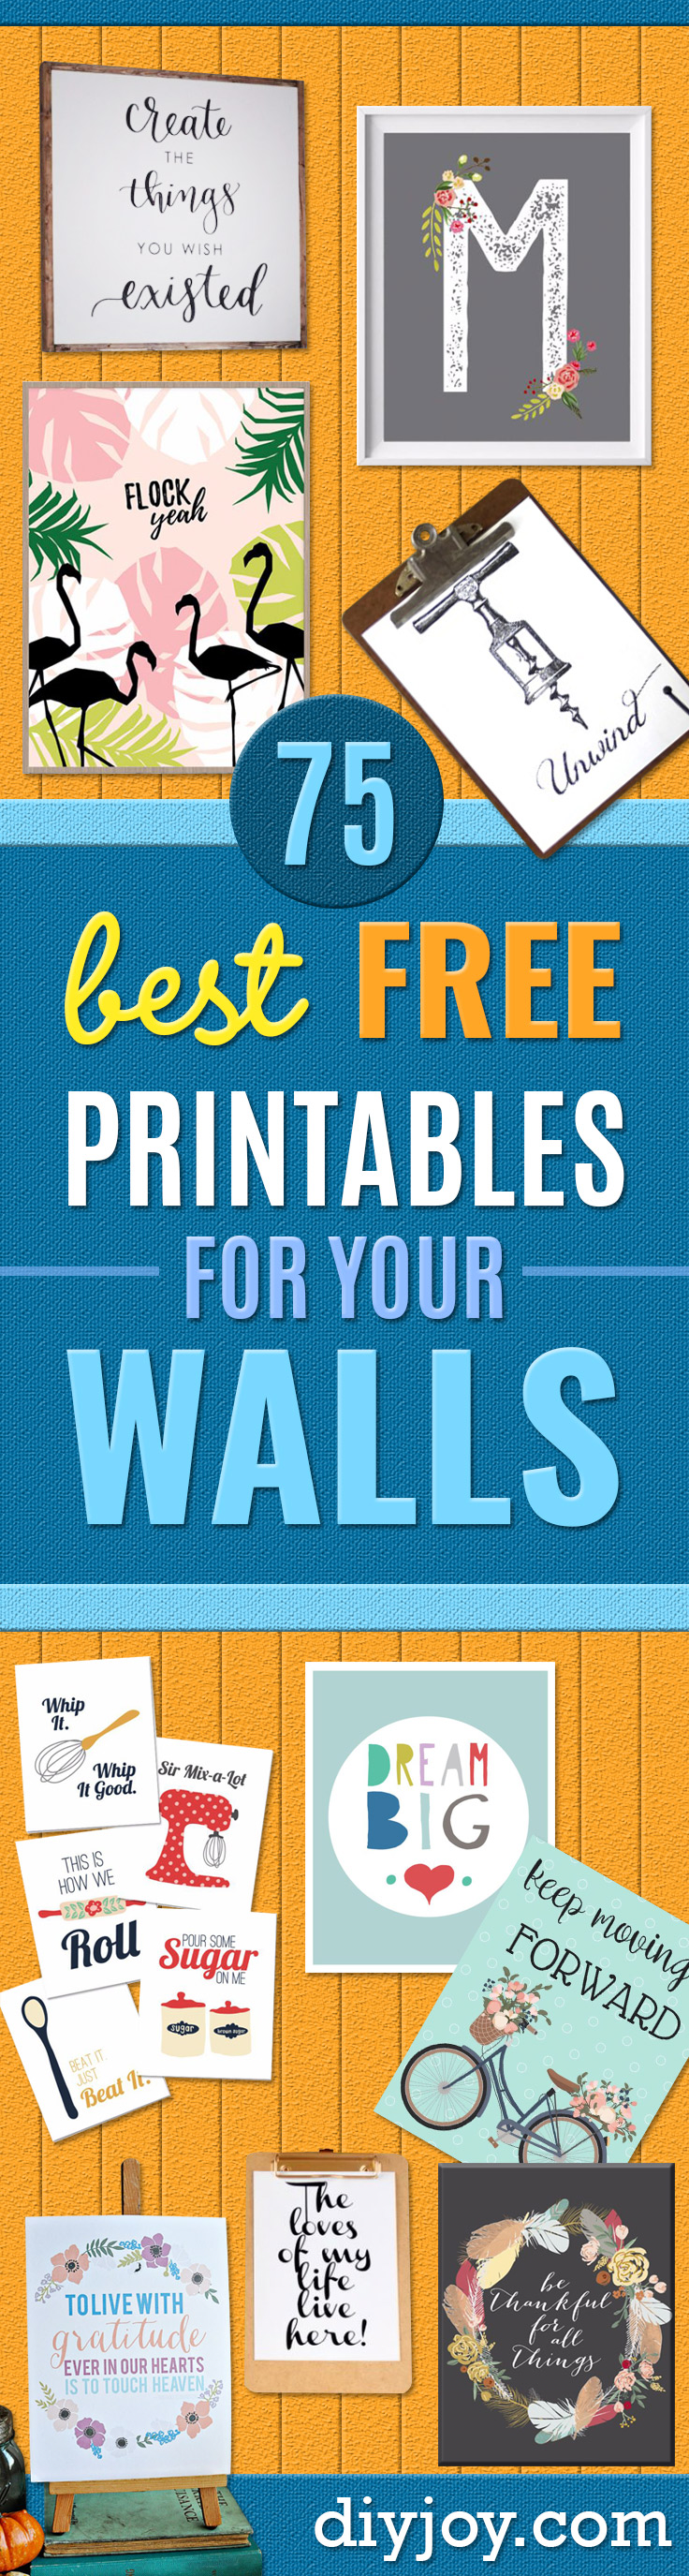 free printables - wall art ideas to print - Free Printable Ideas for DIY Wall Art Home and Bedroom Decor and room decorating idea